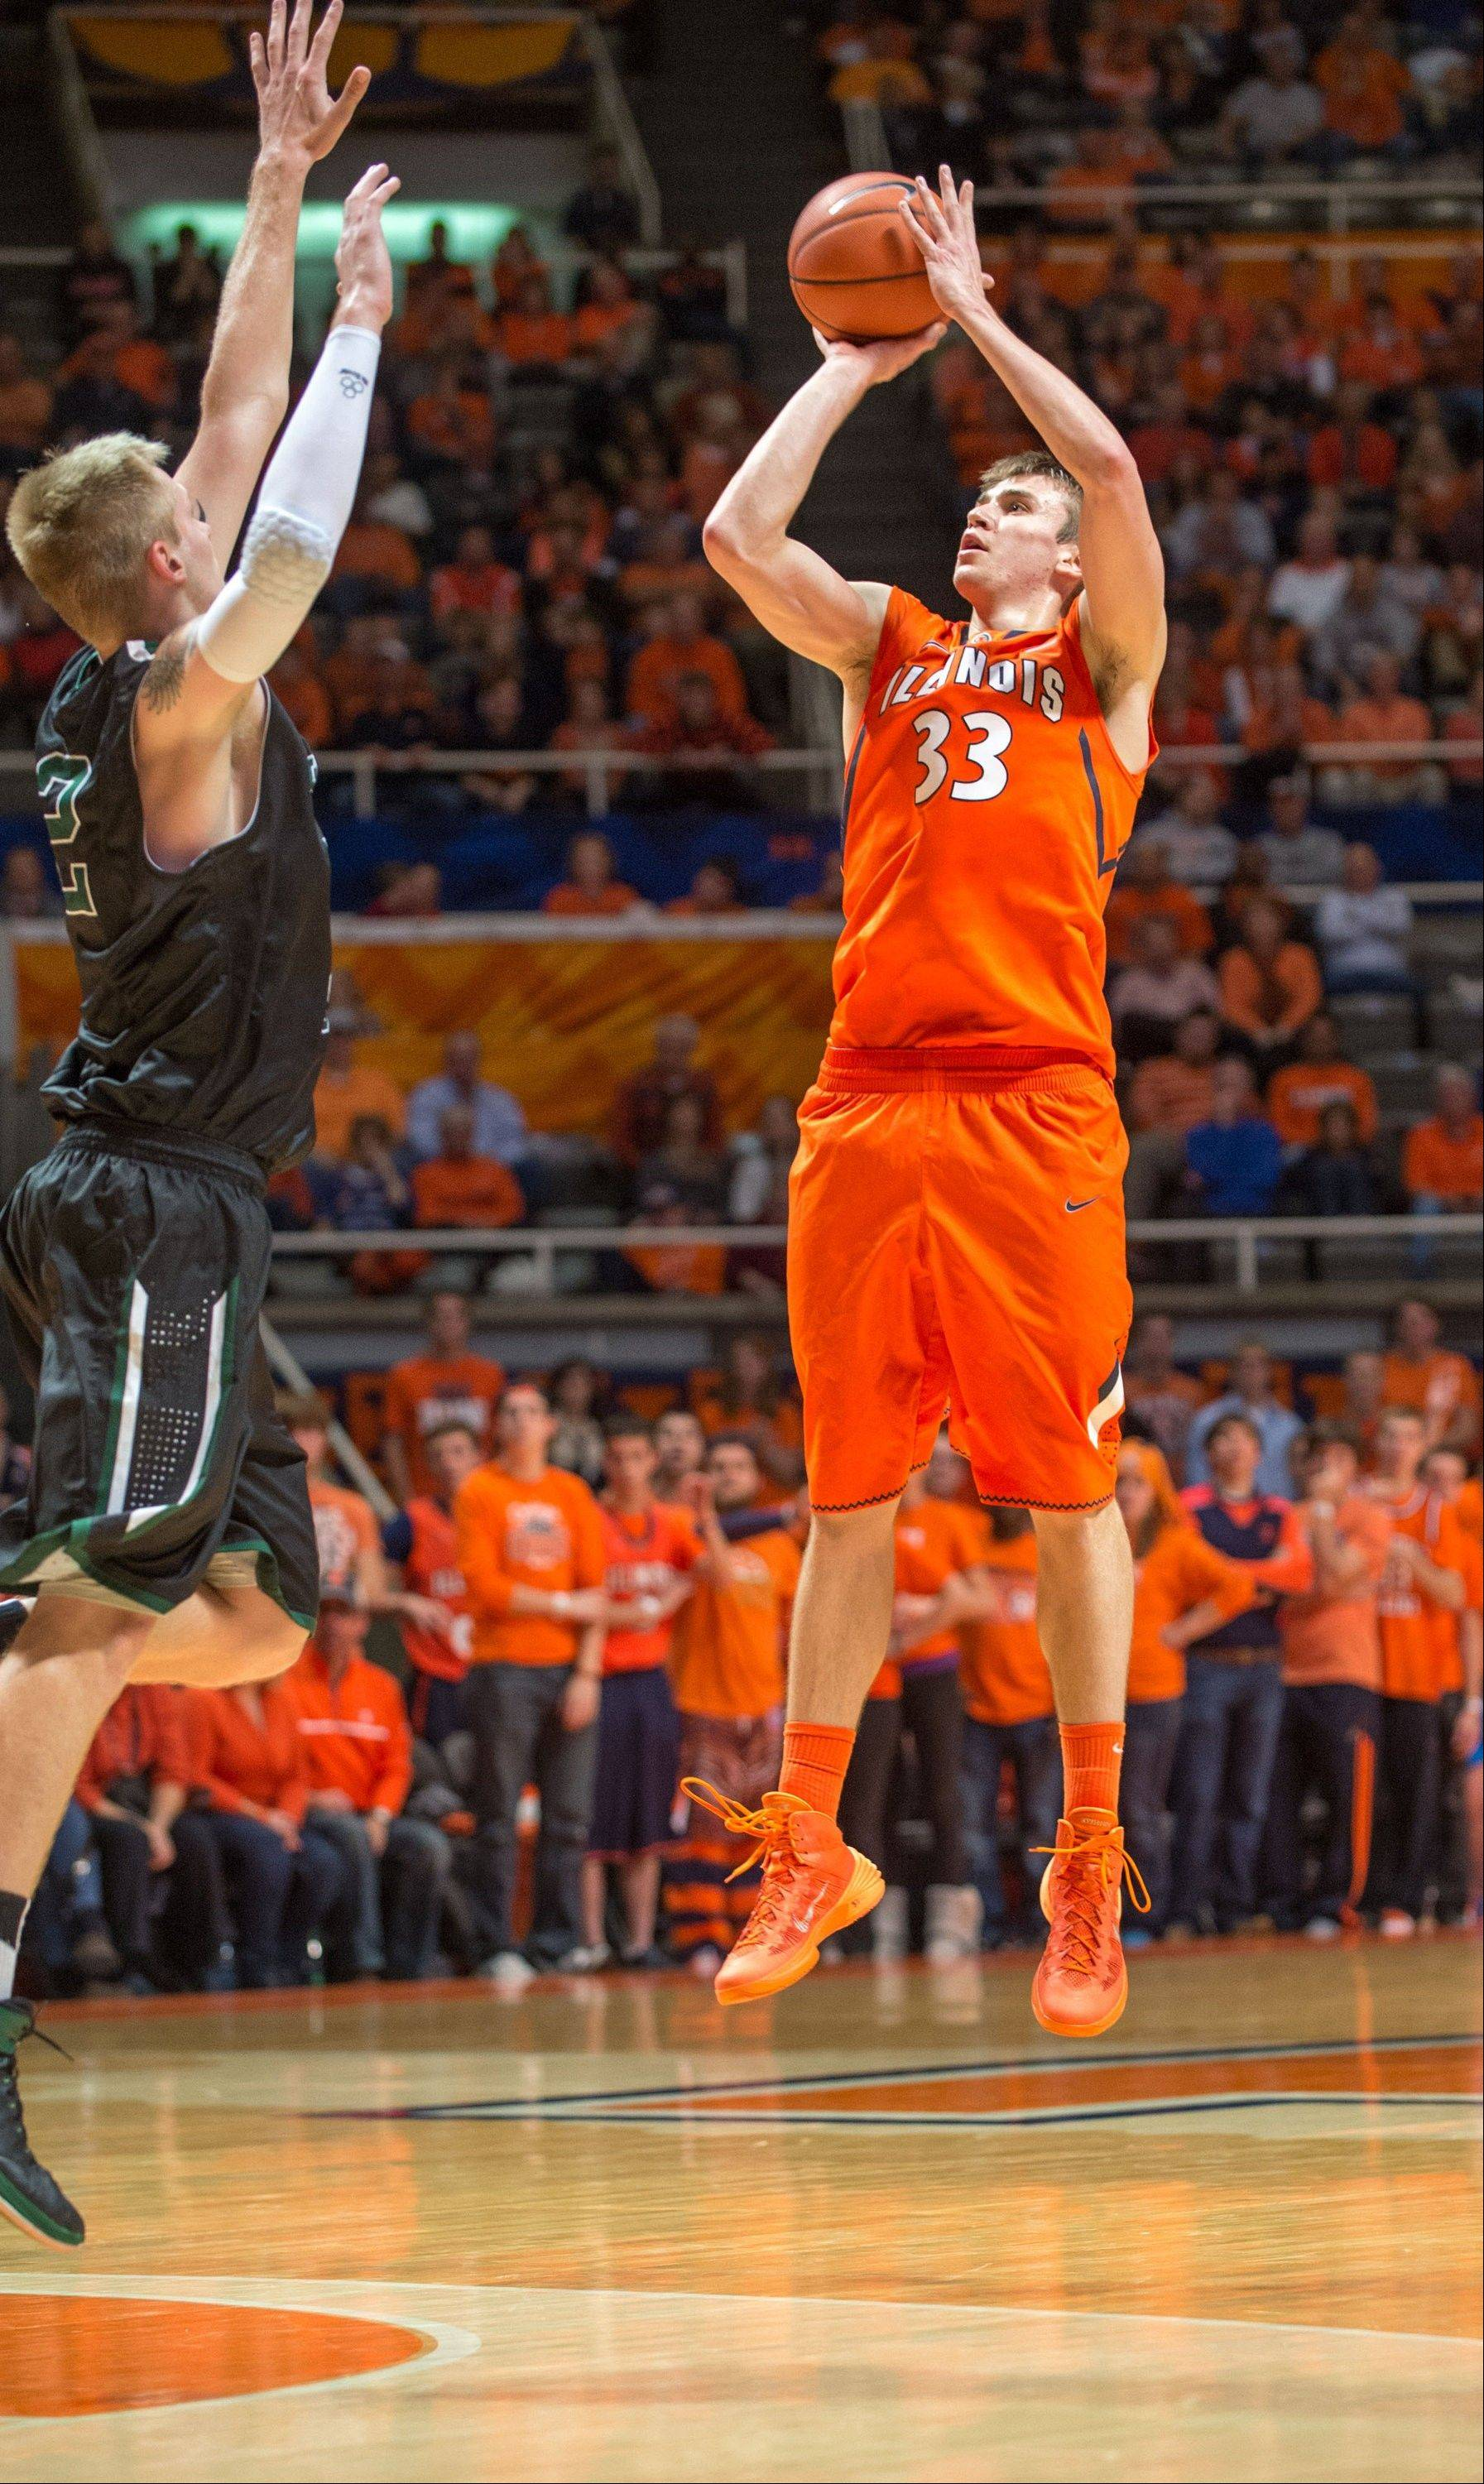 Illinois� Jon Ekey puts up a three-point basket past Chicago State�s Matt Ross during the second half of Friday�s game in Champaign.